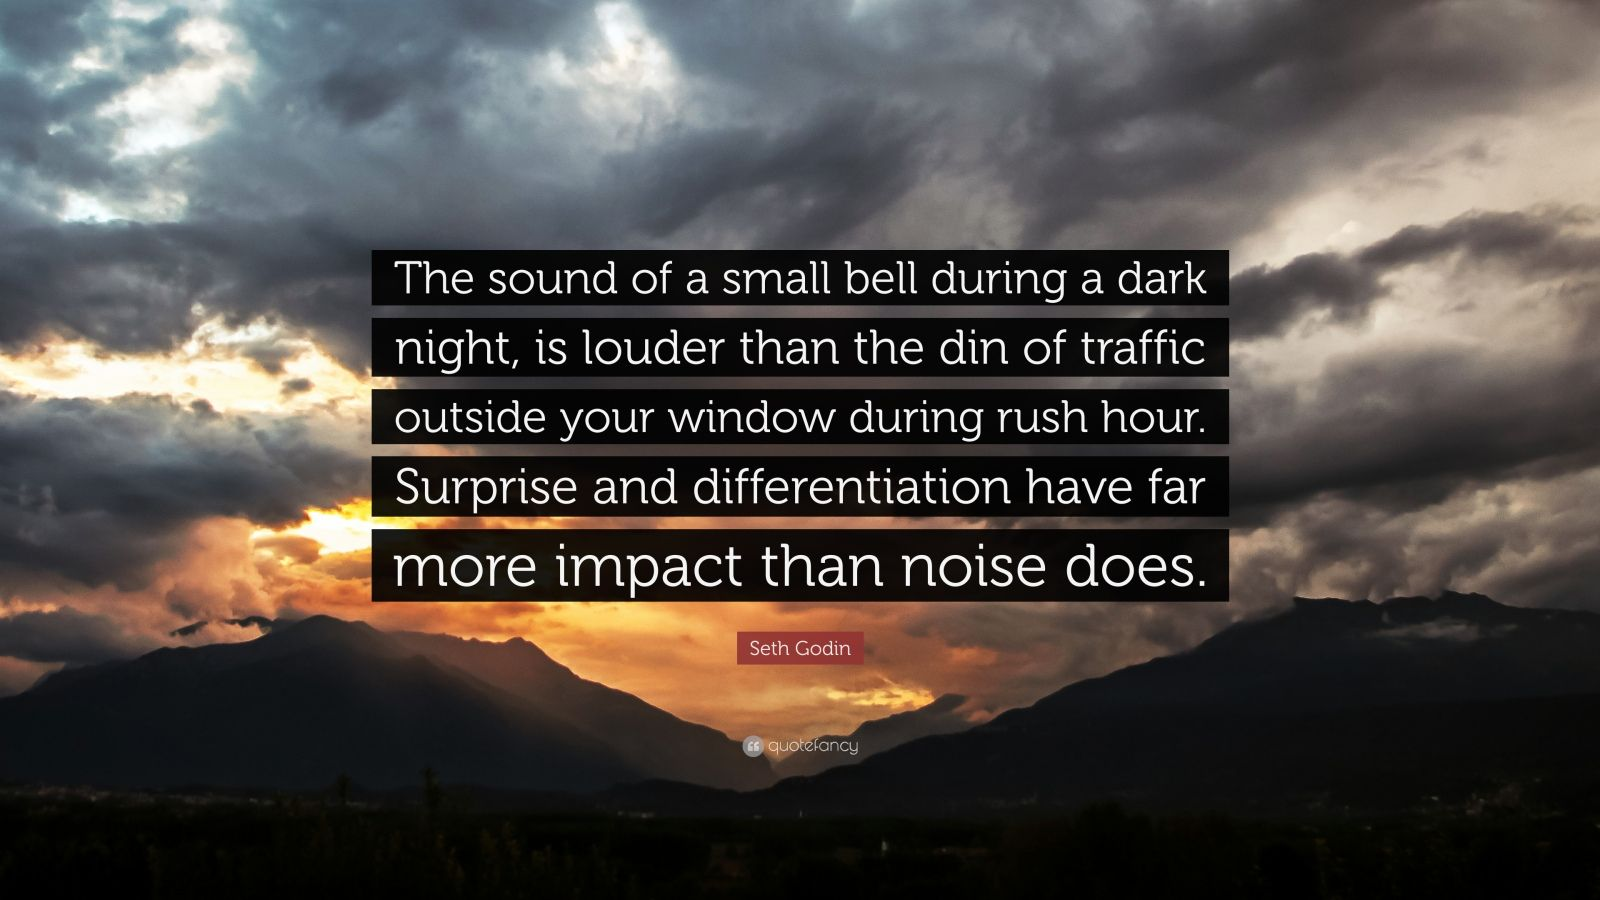 """Seth Godin Quote: """"The sound of a small bell during a dark night, is louder than the din of traffic outside your window during rush hour. Surprise and differentiation have far more impact than noise does."""""""